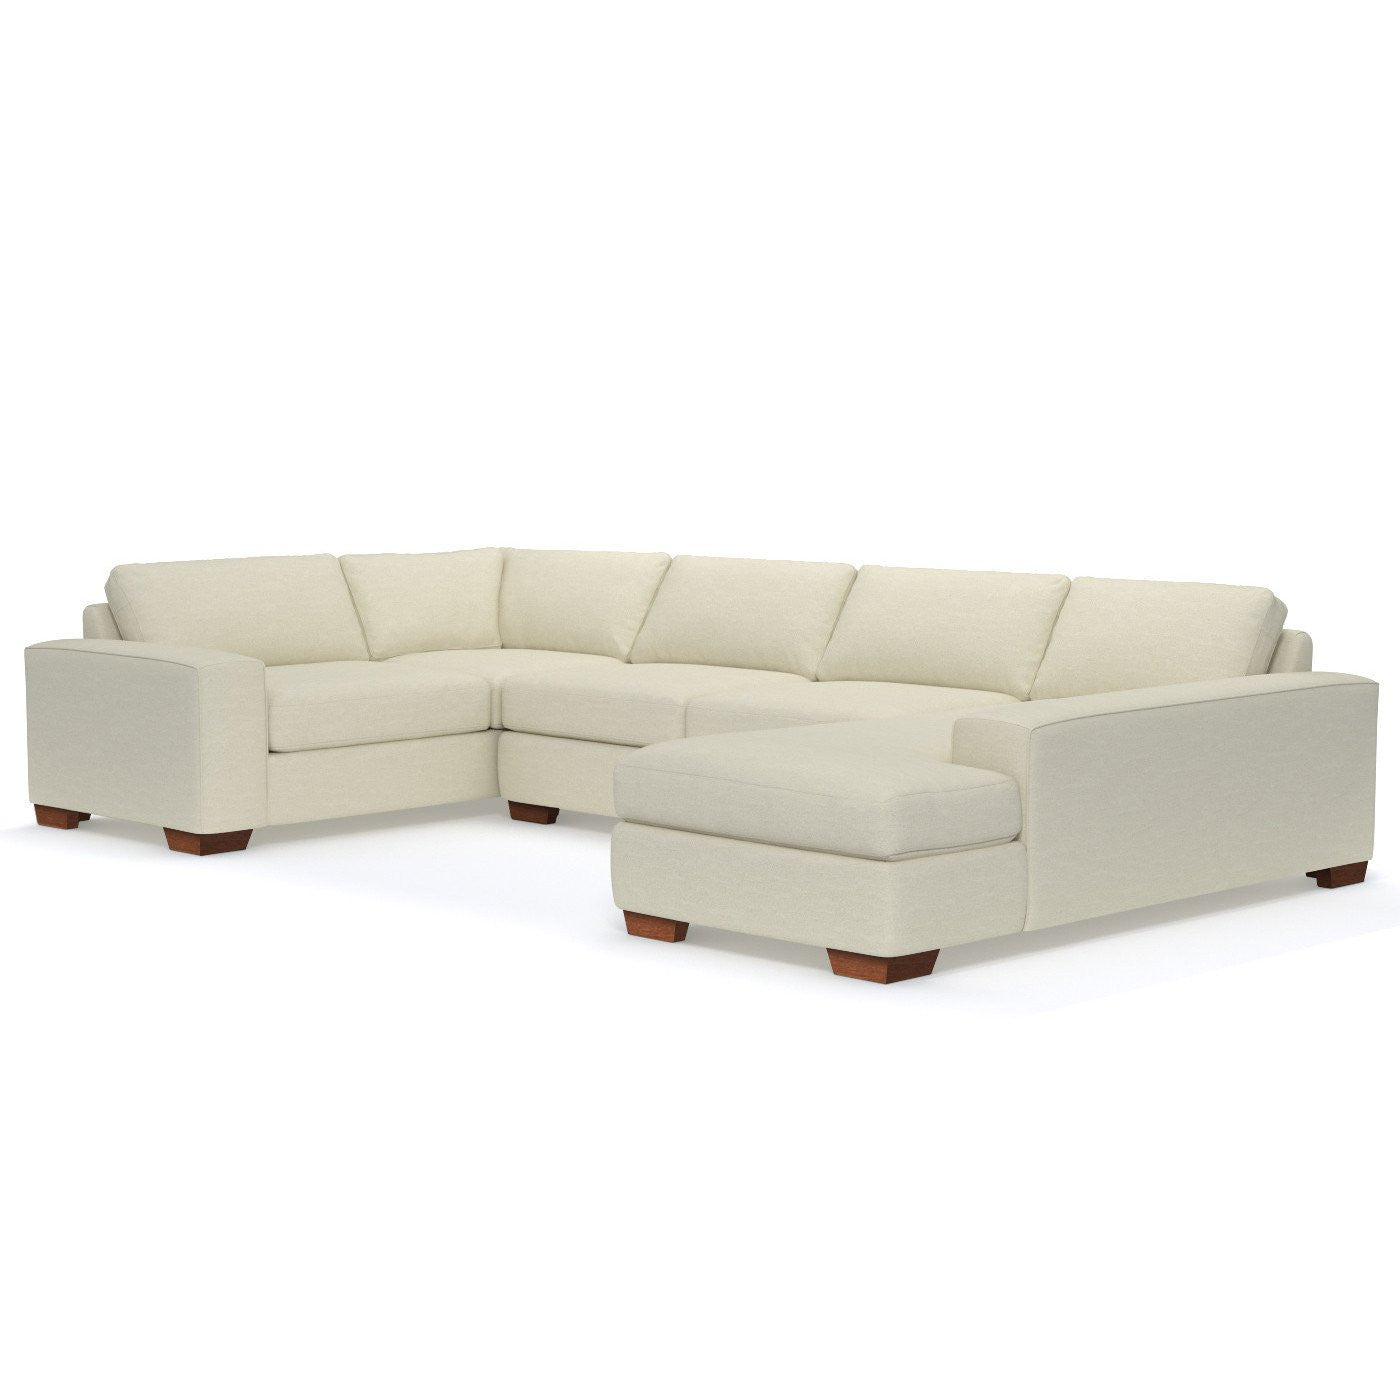 Cream Sectional Sofa American Casual Ellery Lshaped